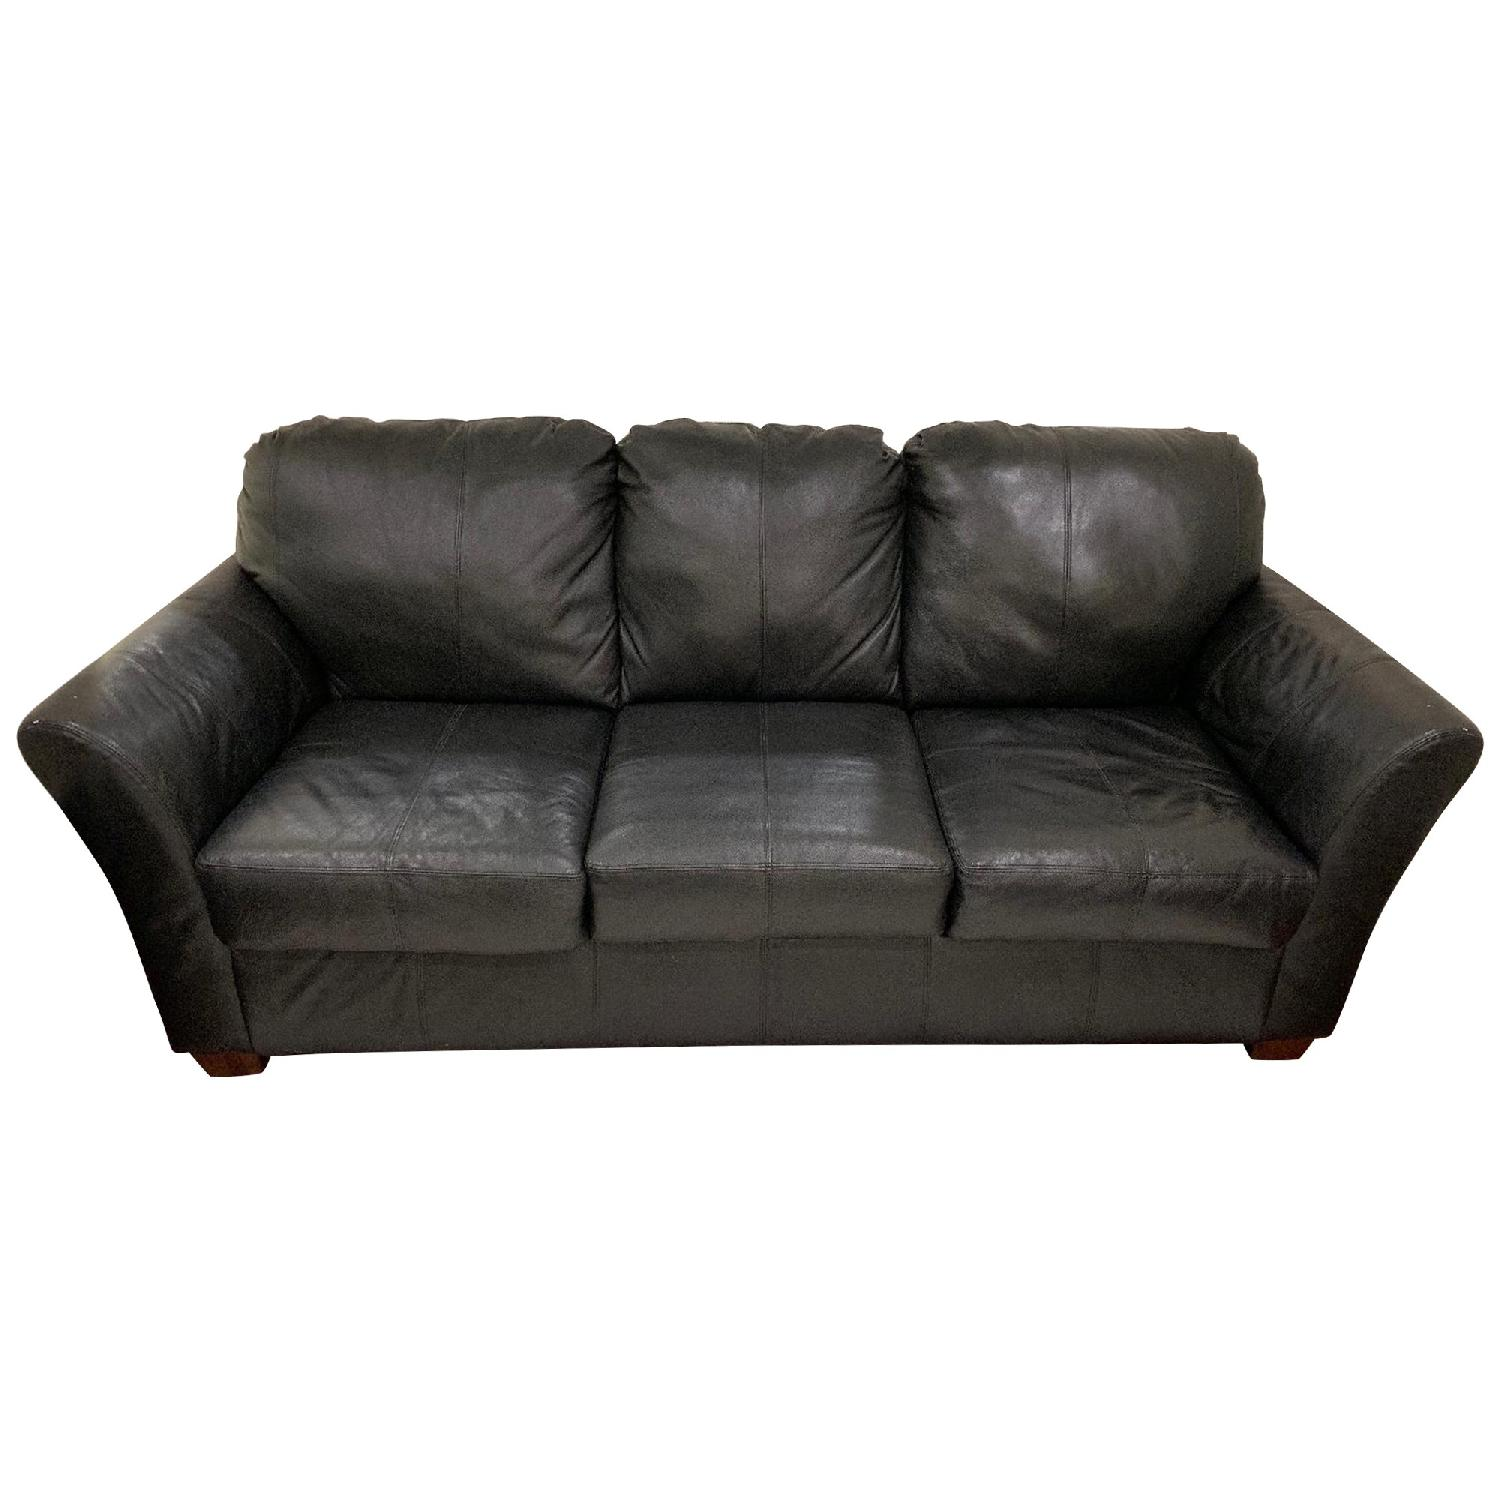 Black Leather 3-Seater Sofa + Chair